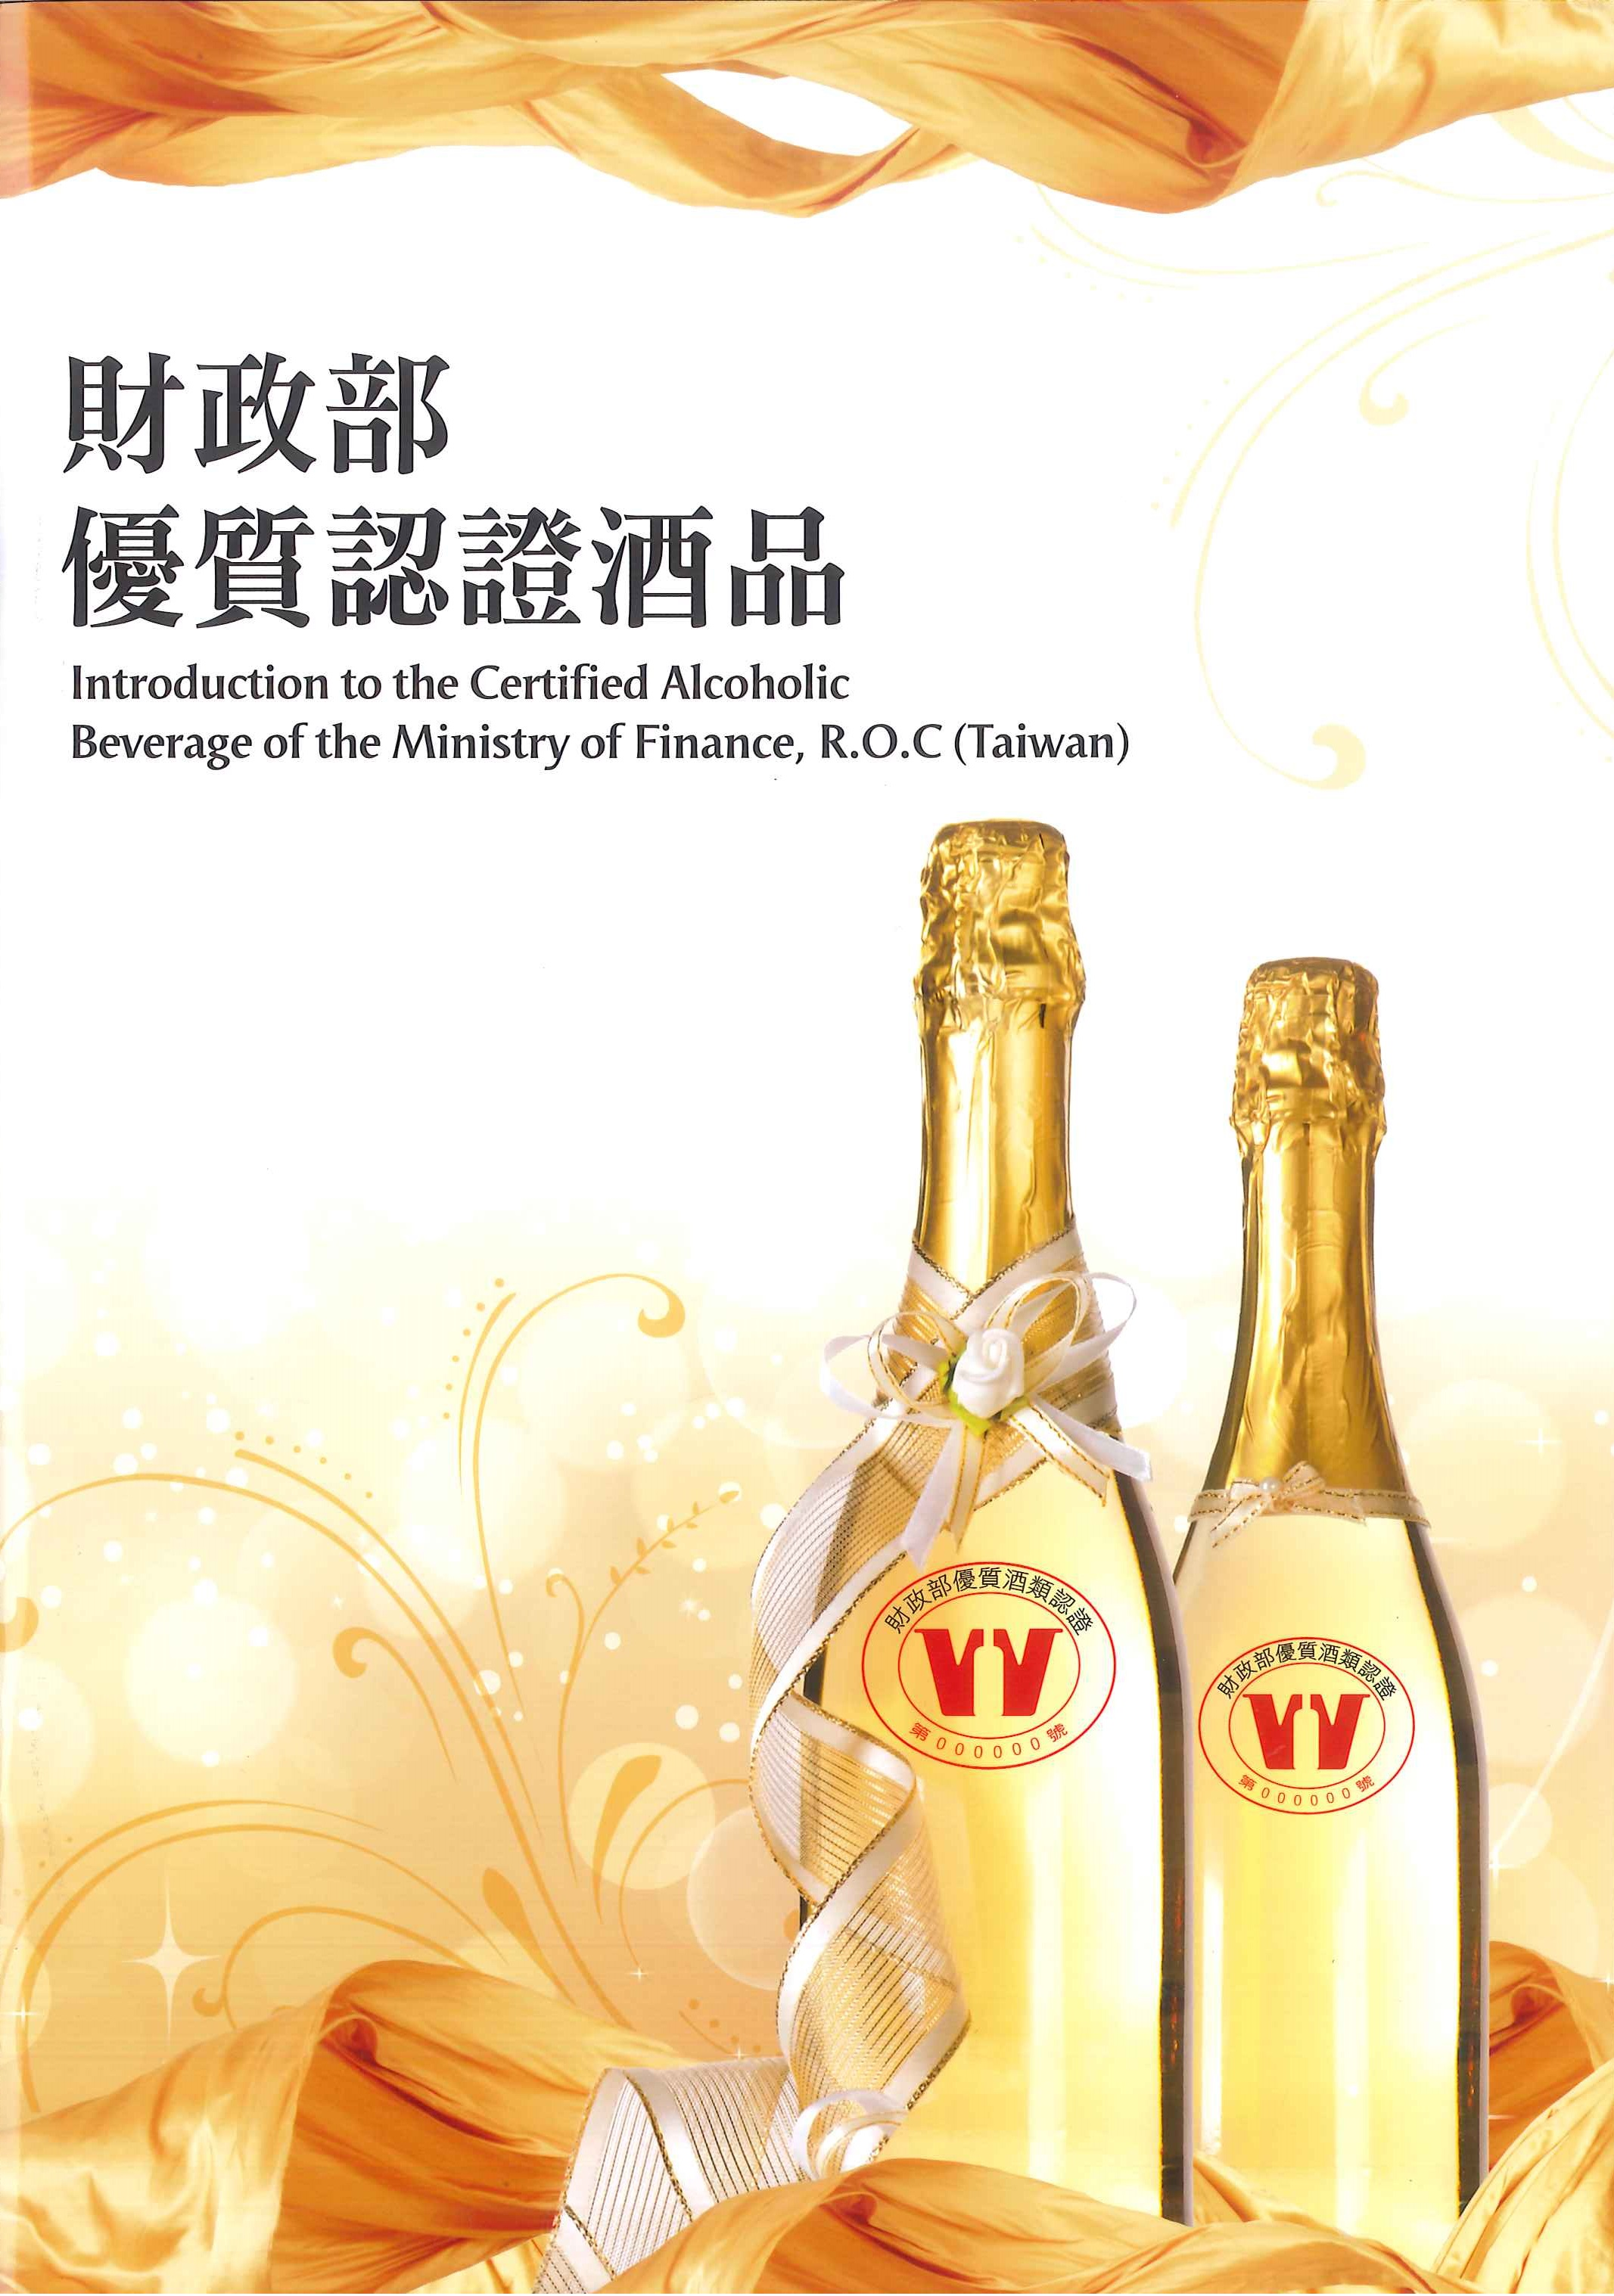 財政部優質認證酒品=Introduction to the certified alcoholic beverage of the Ministry of Finance, R.O.C (Taiwan)